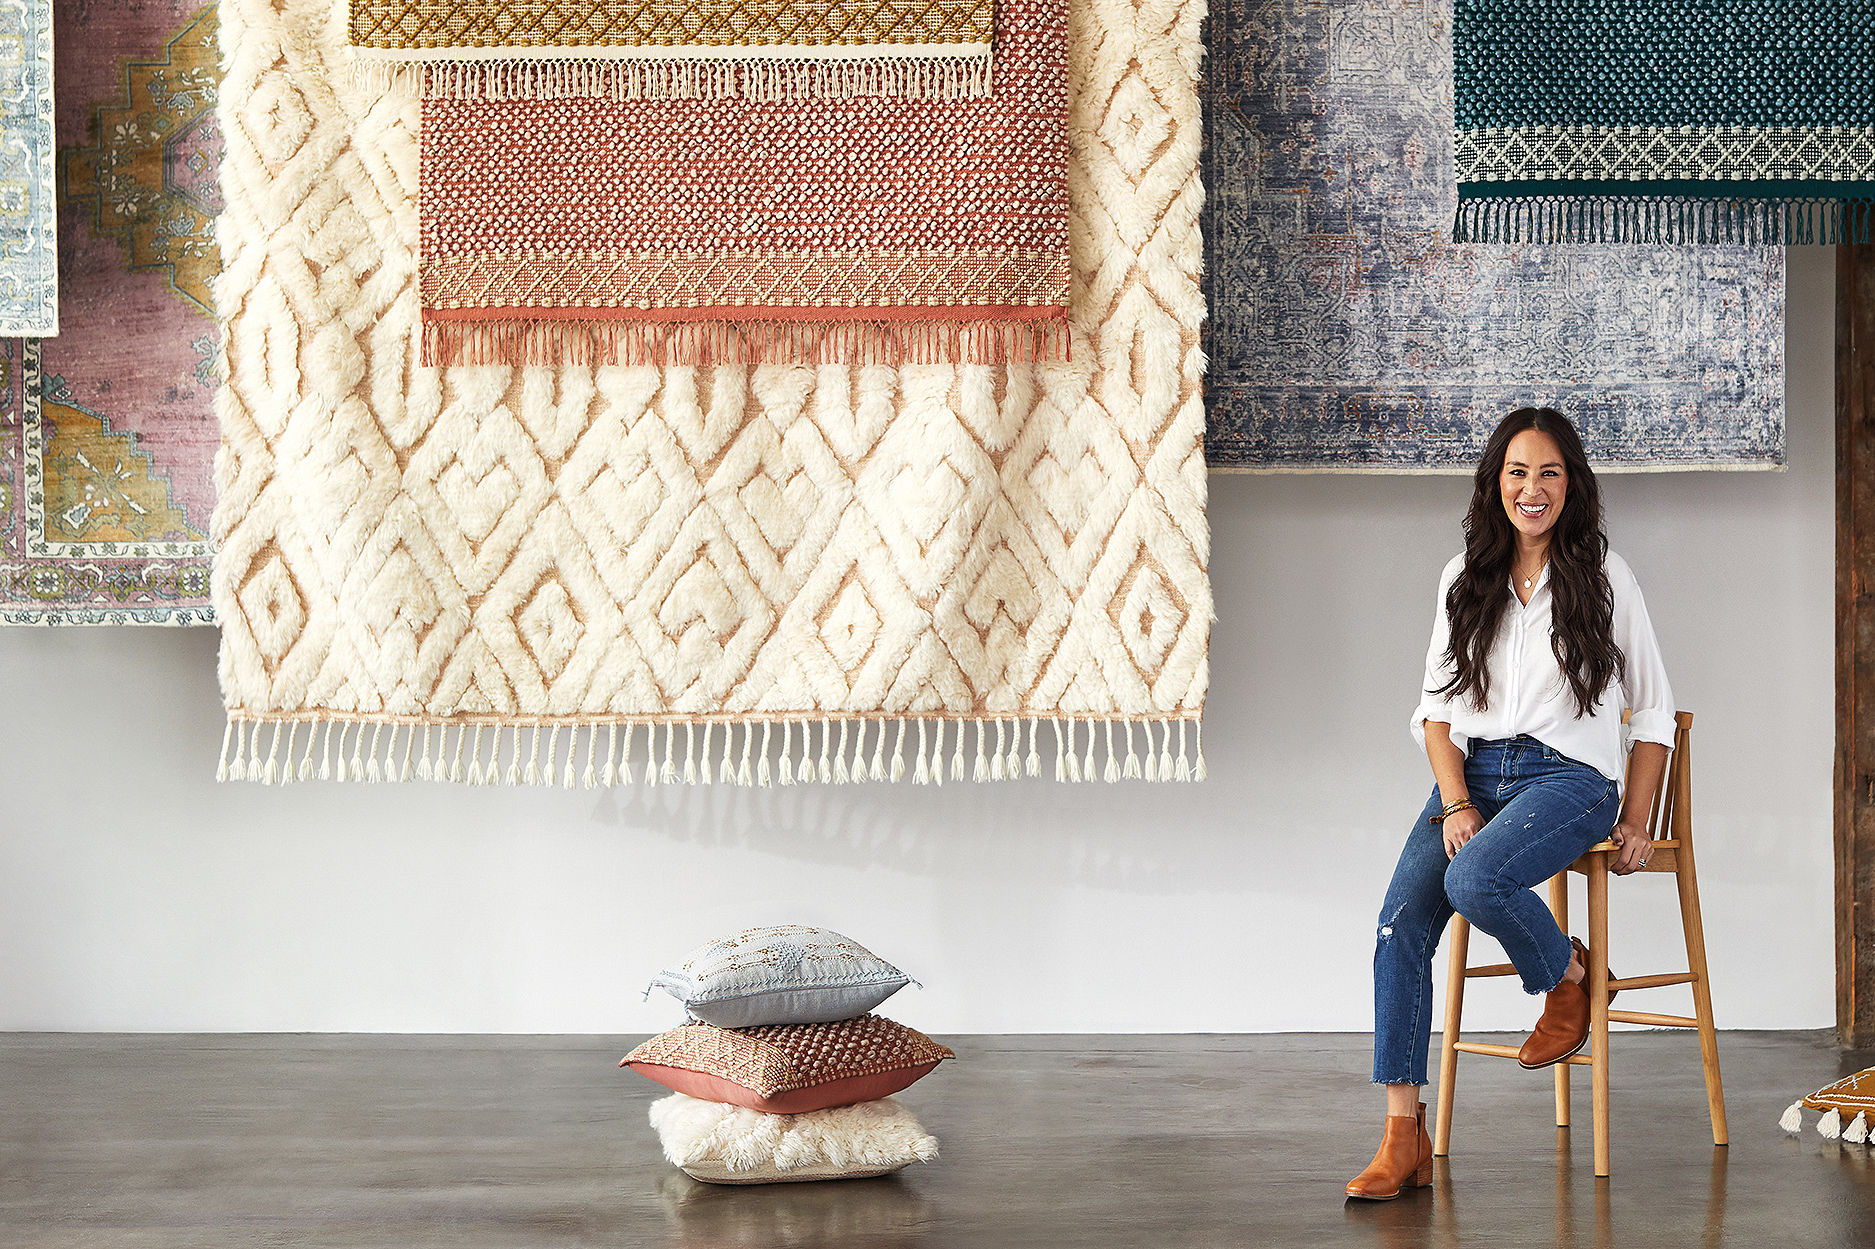 Joanna Gaines Launches 'Subtle, Classic' Collection of Rugs and Pillows at Anthropologie